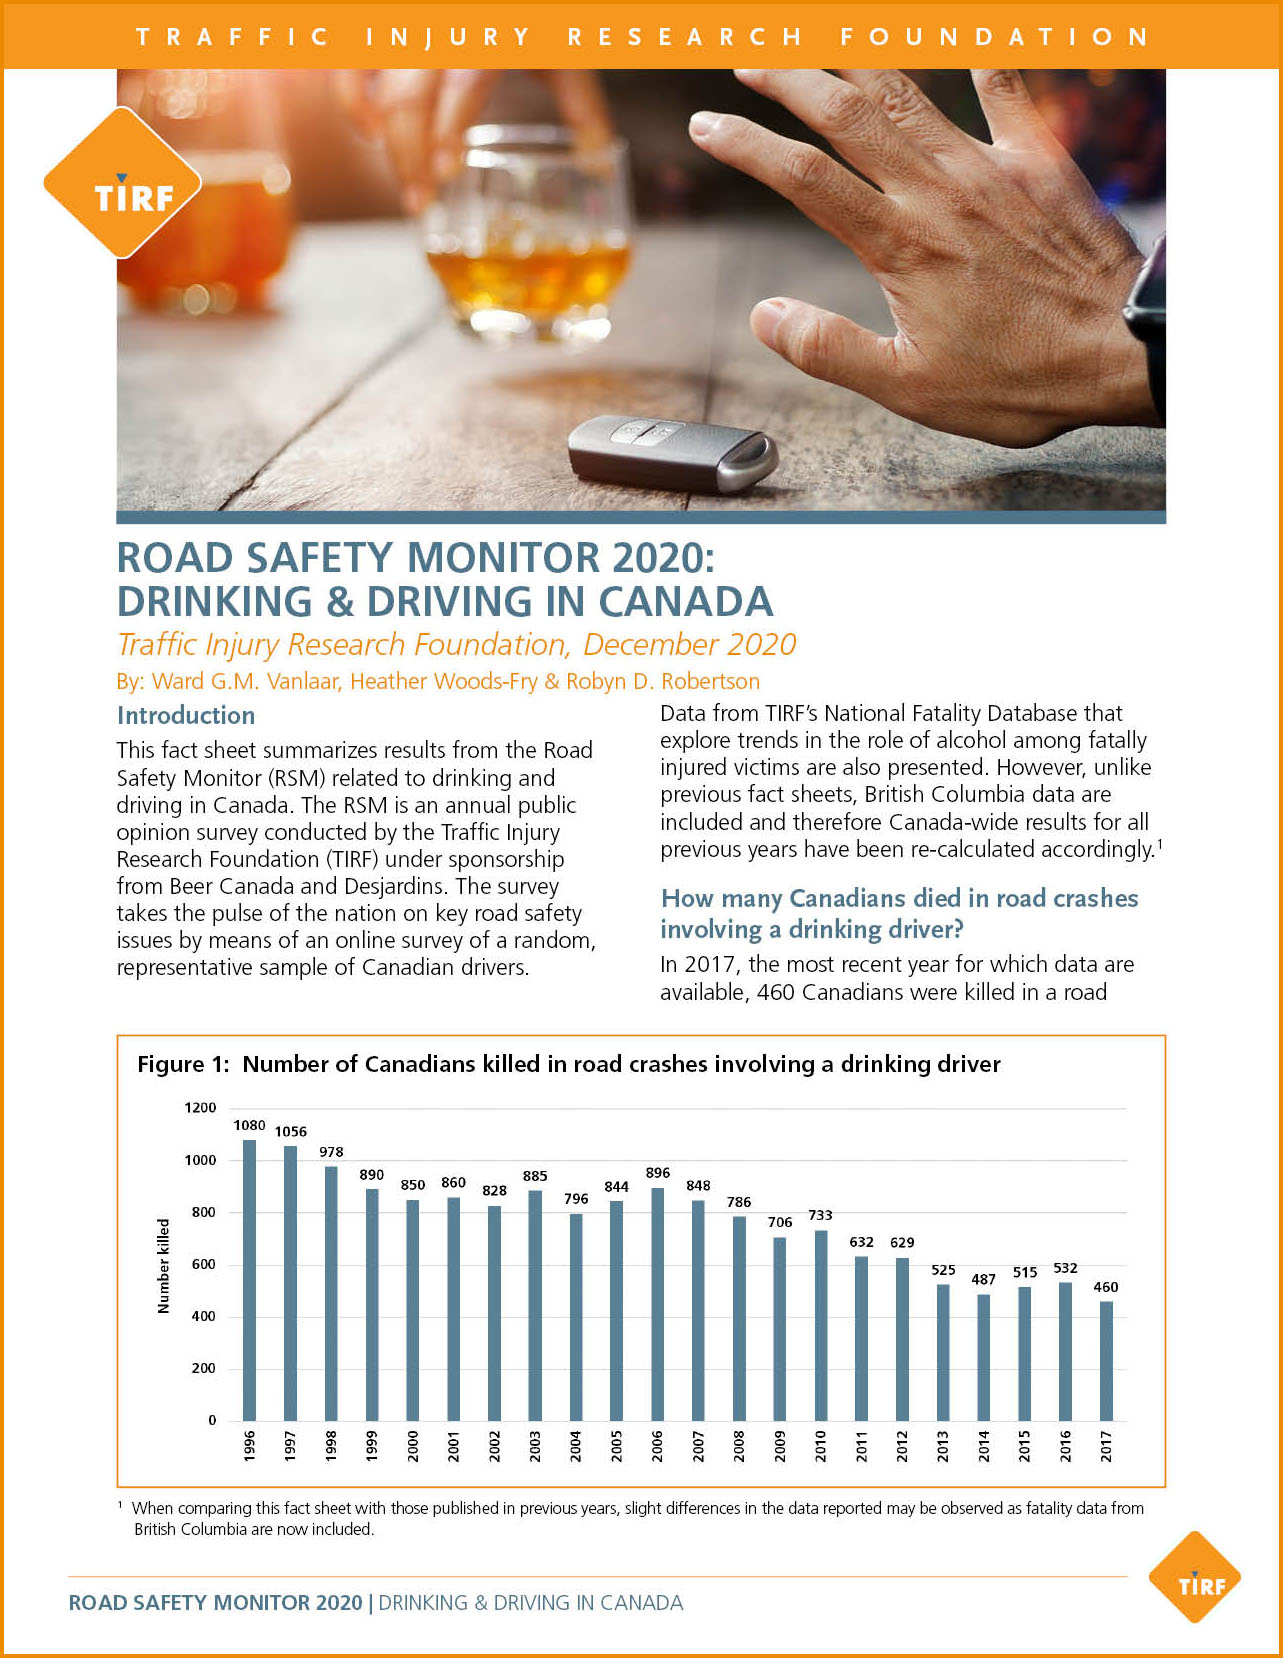 Road Safety Monitor 2020: Drinking & Driving in Canada